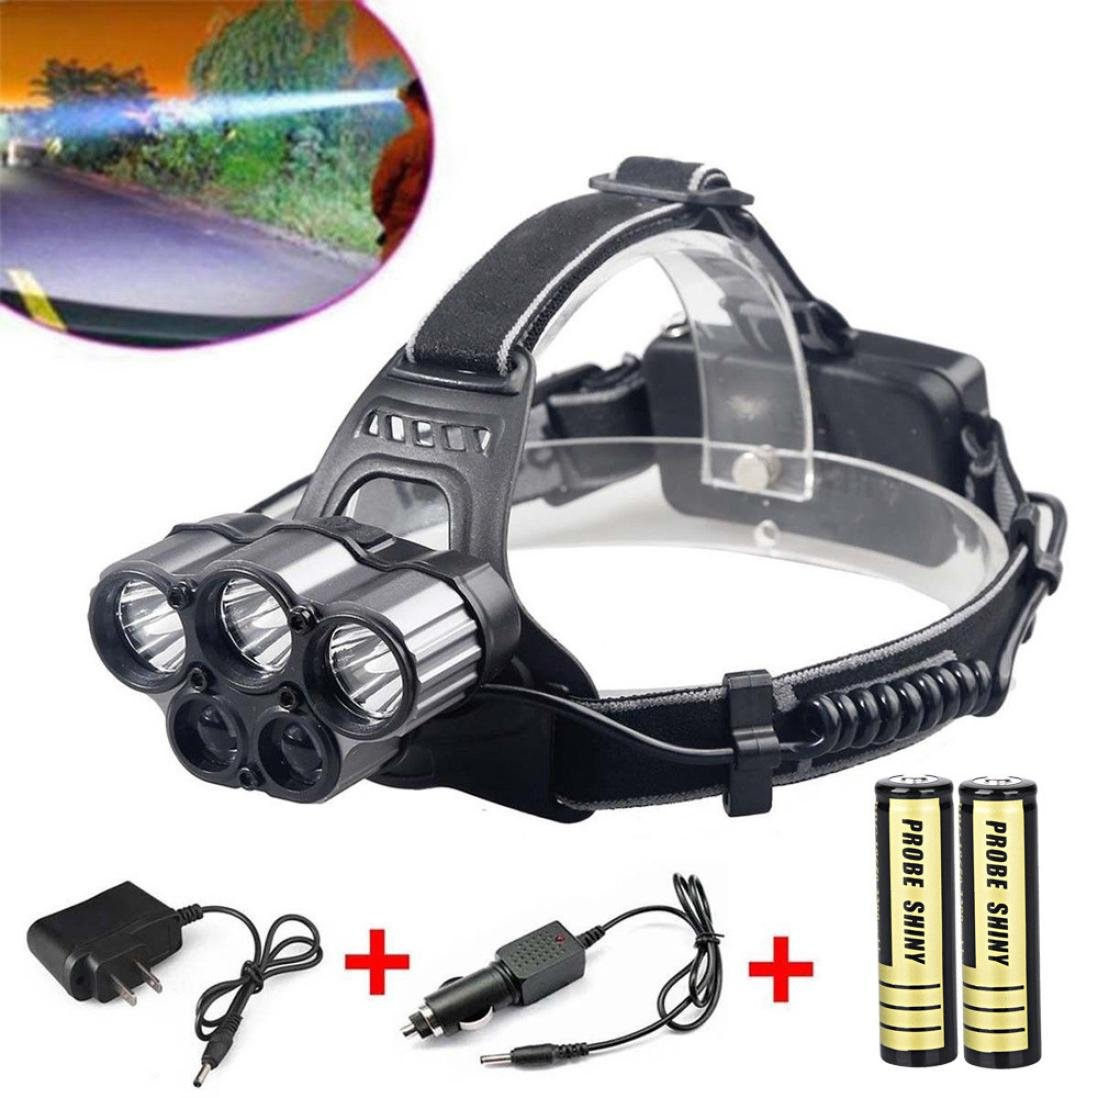 30000 Lumens(LM) 6 Modes 5x XM-L T6 LED Durable Rechargeable 18650 Battery Waterproof Metal CREE Head Torch Headlamp Head Light Flashlight Torch TianranRT